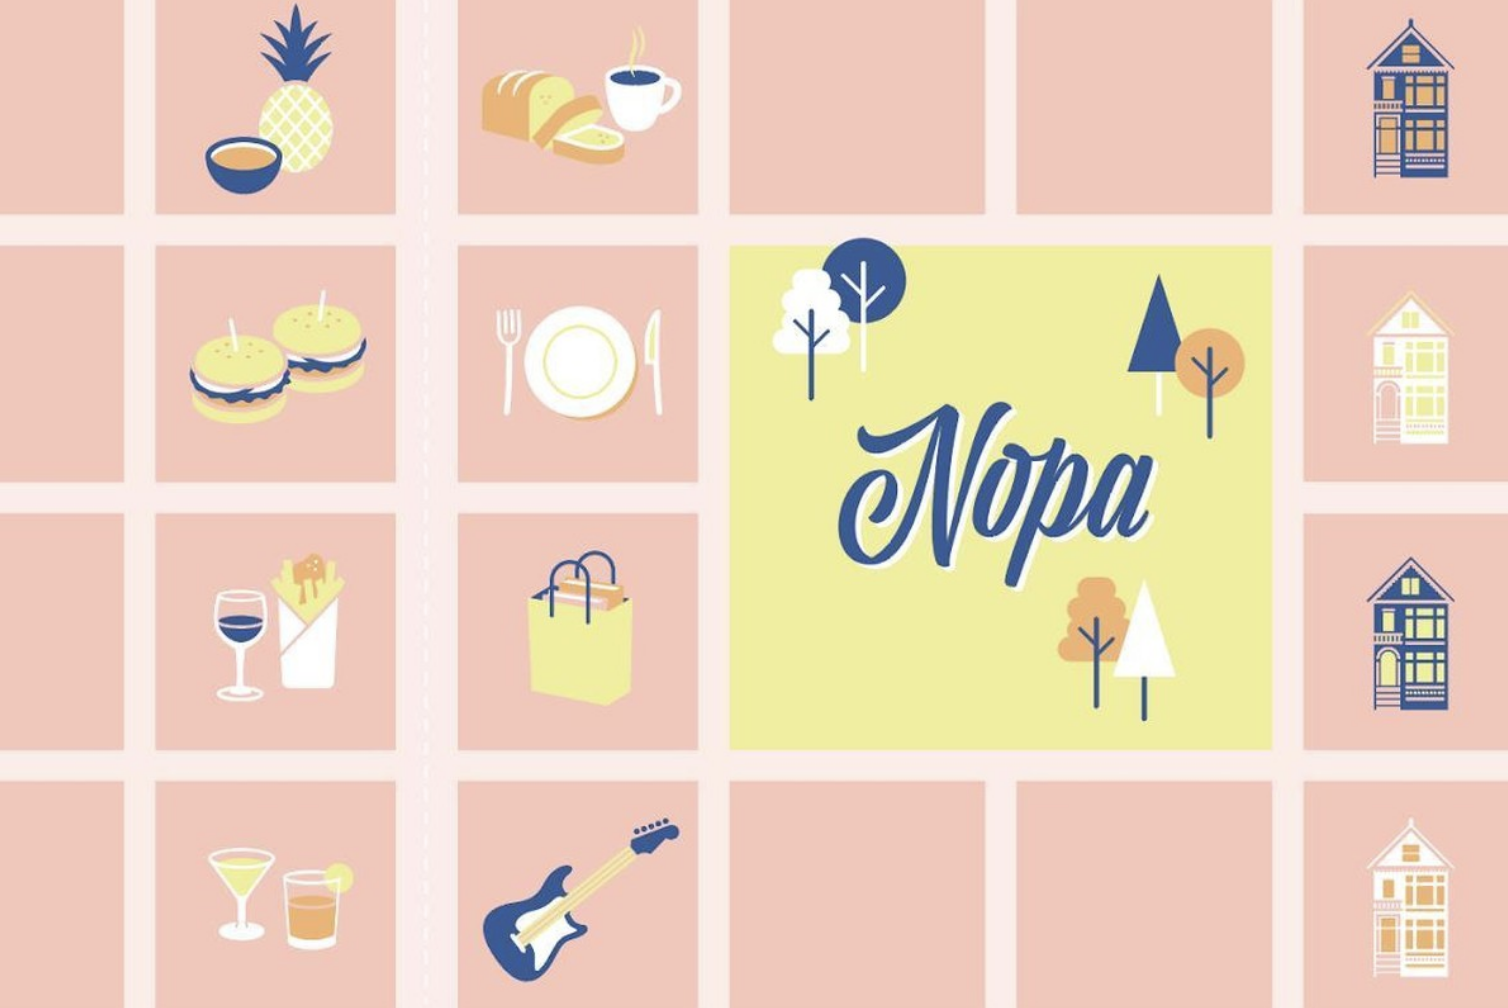 <b>7X7 BAY AREA </b>Nopa: Where to Eat, Drink, Shop & Go out in This Hip San Francisco 'Hood